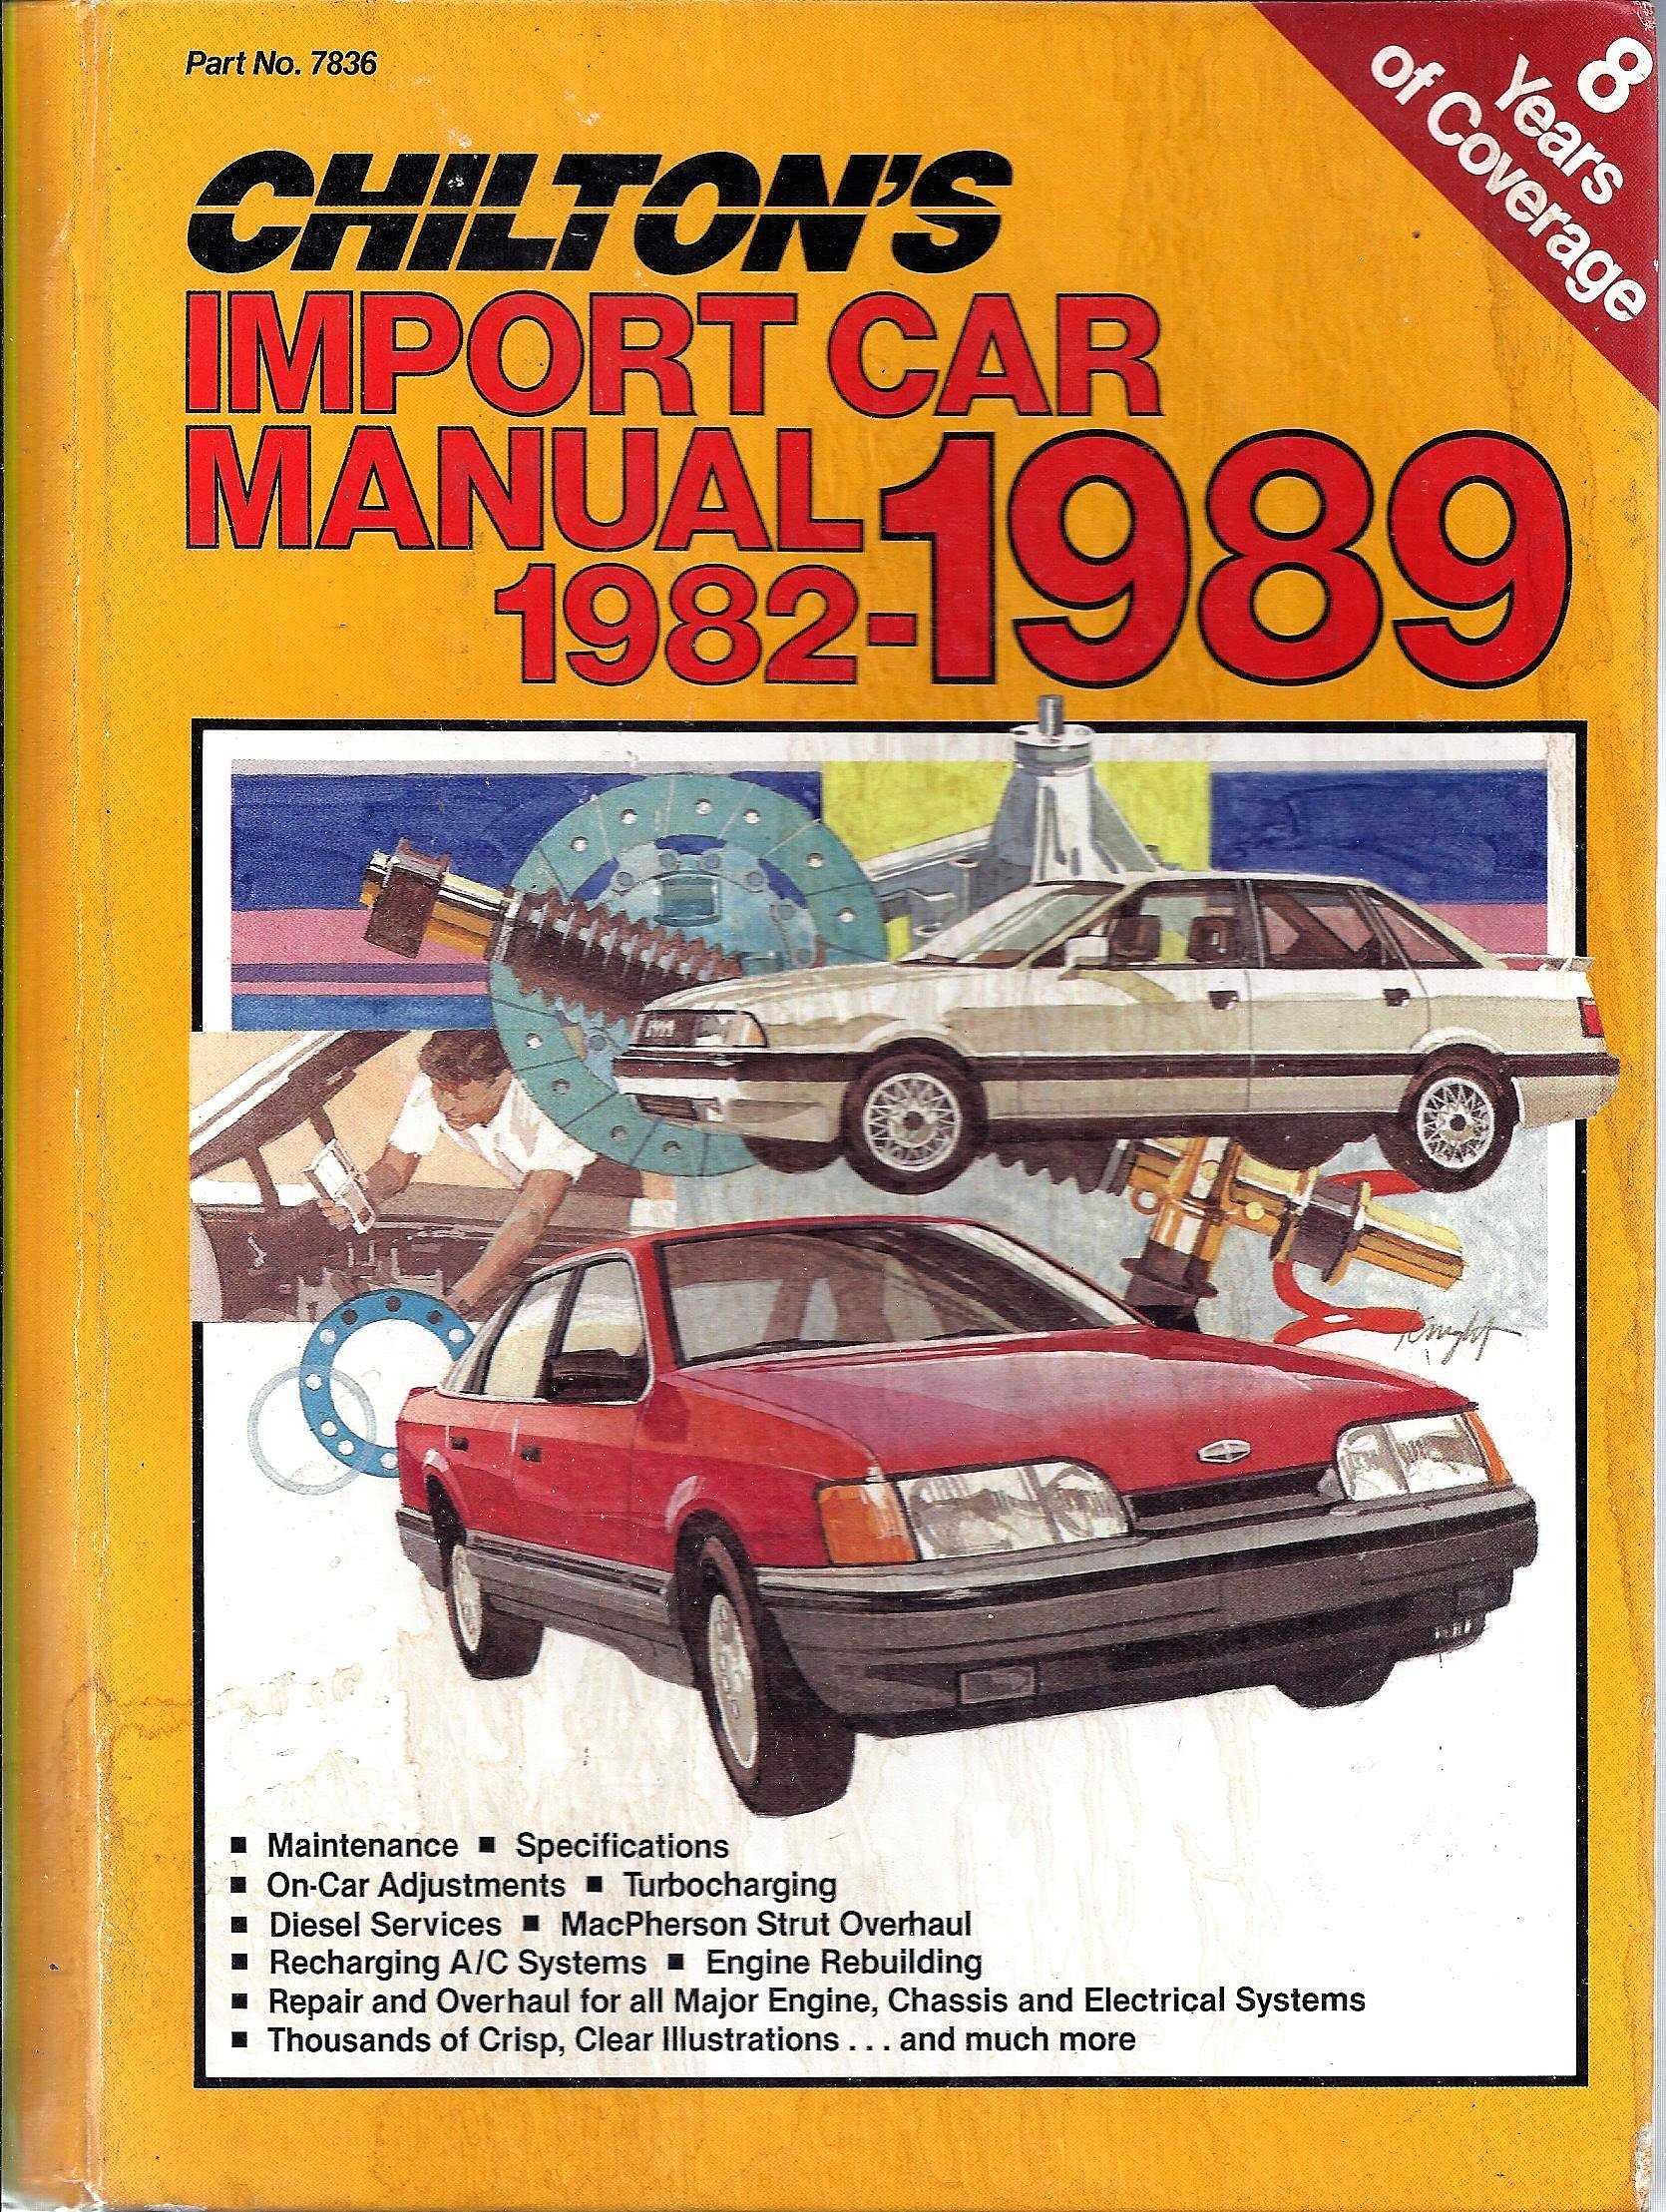 Chiltons Import Car Repair Manual, 1982-1989 (CHILTONS IMPORT AUTO SERVICE MANUAL) Hardcover – October 1, 1988